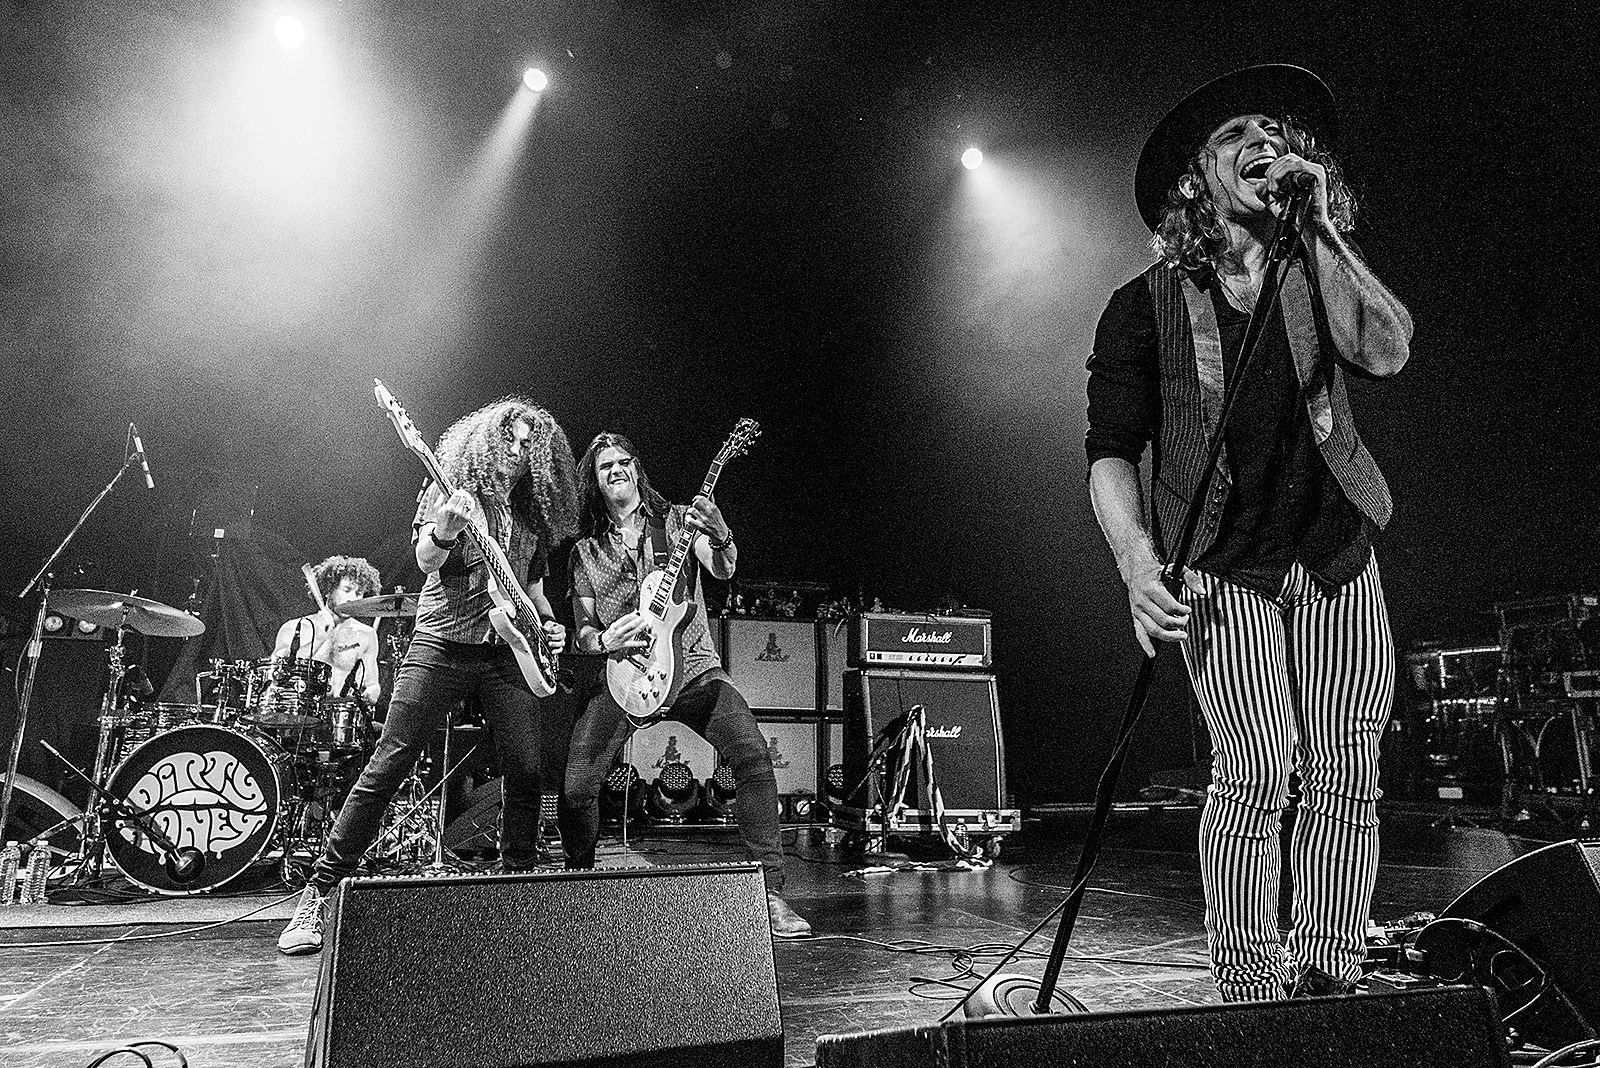 Dirty Honey Ride 'New Wave of Rock and Roll' With Debut Album